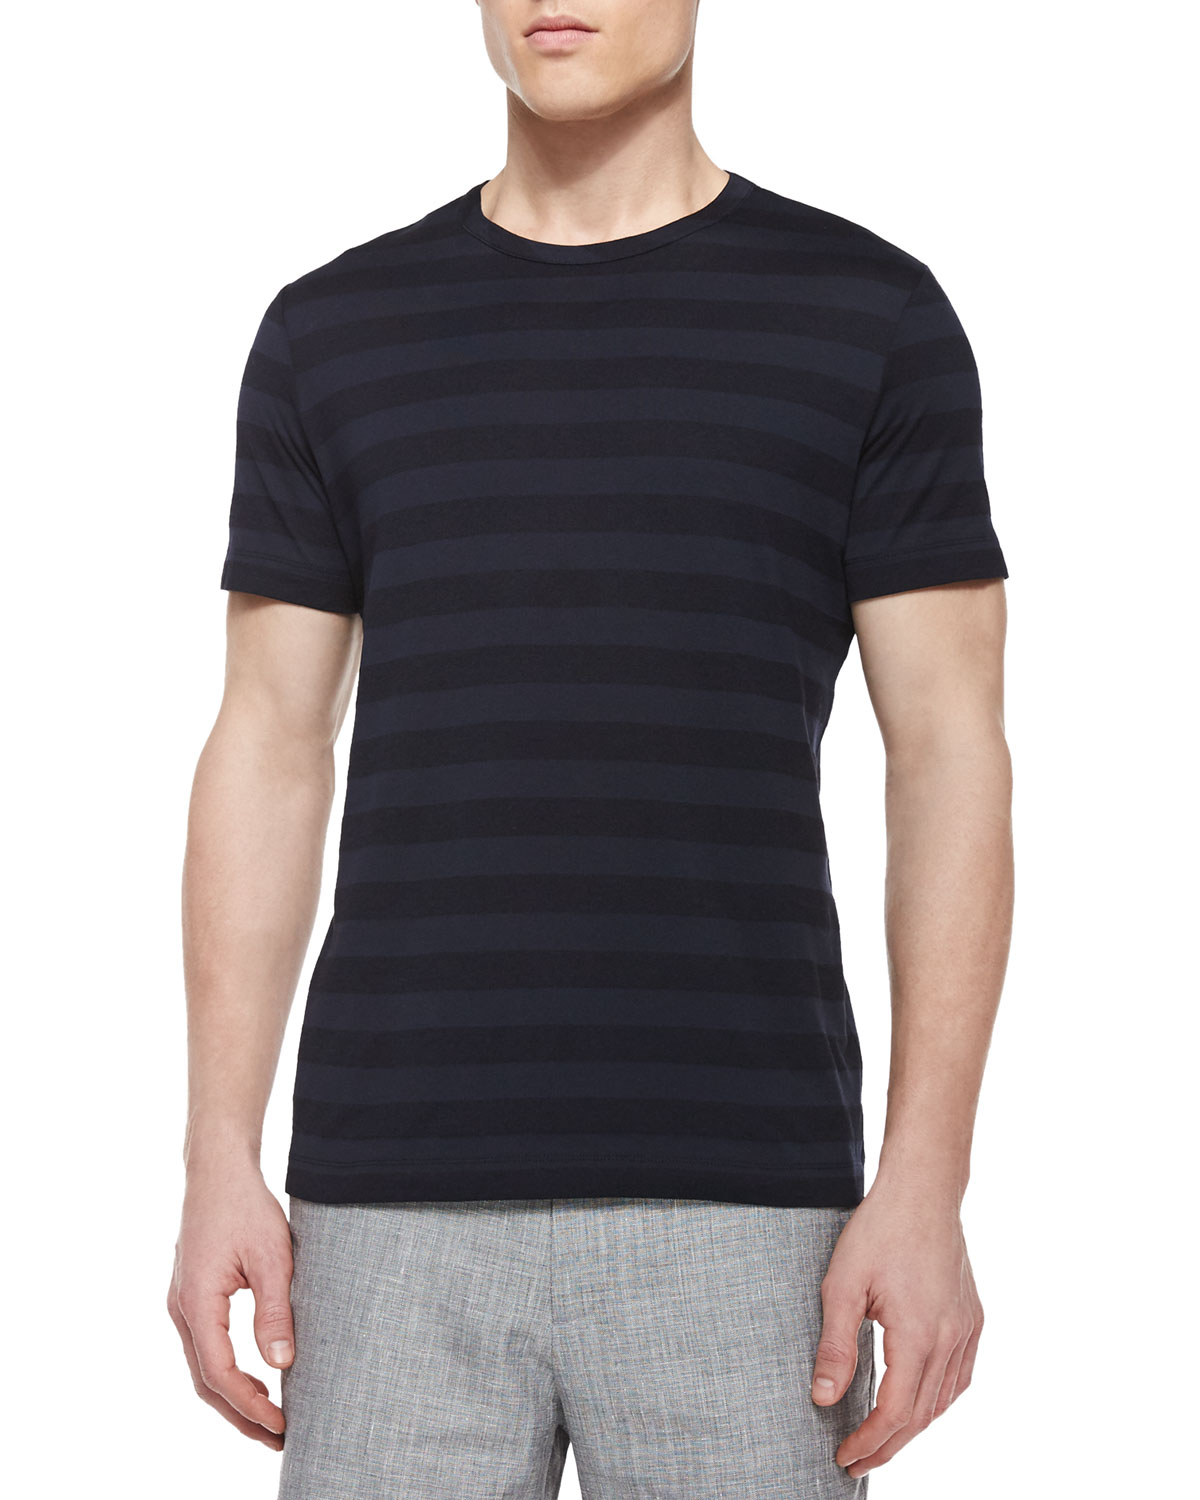 Striped Short-Sleeve Tee, Black